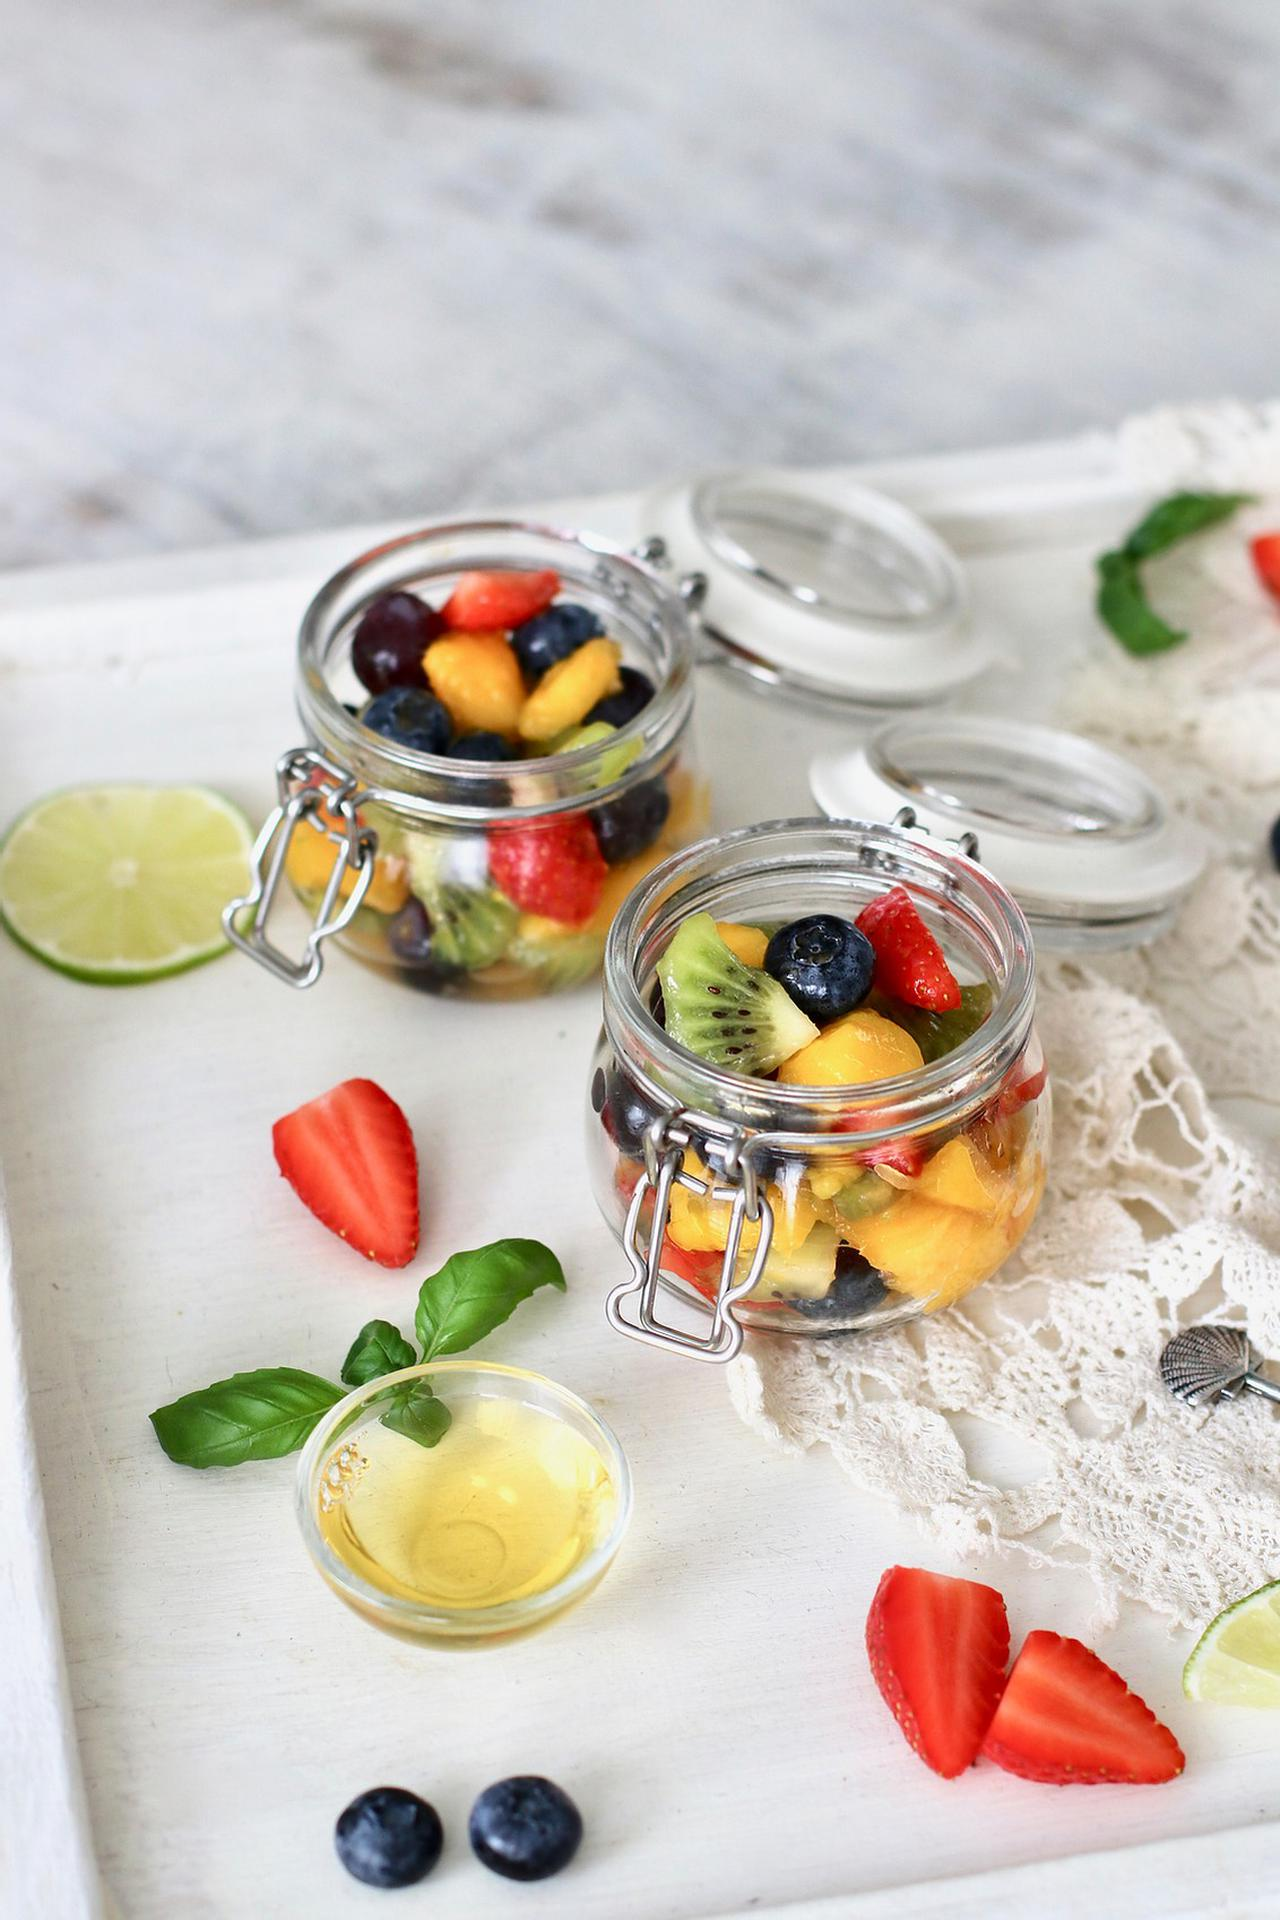 Main image of Sweet Lime Summer Fruit Salad